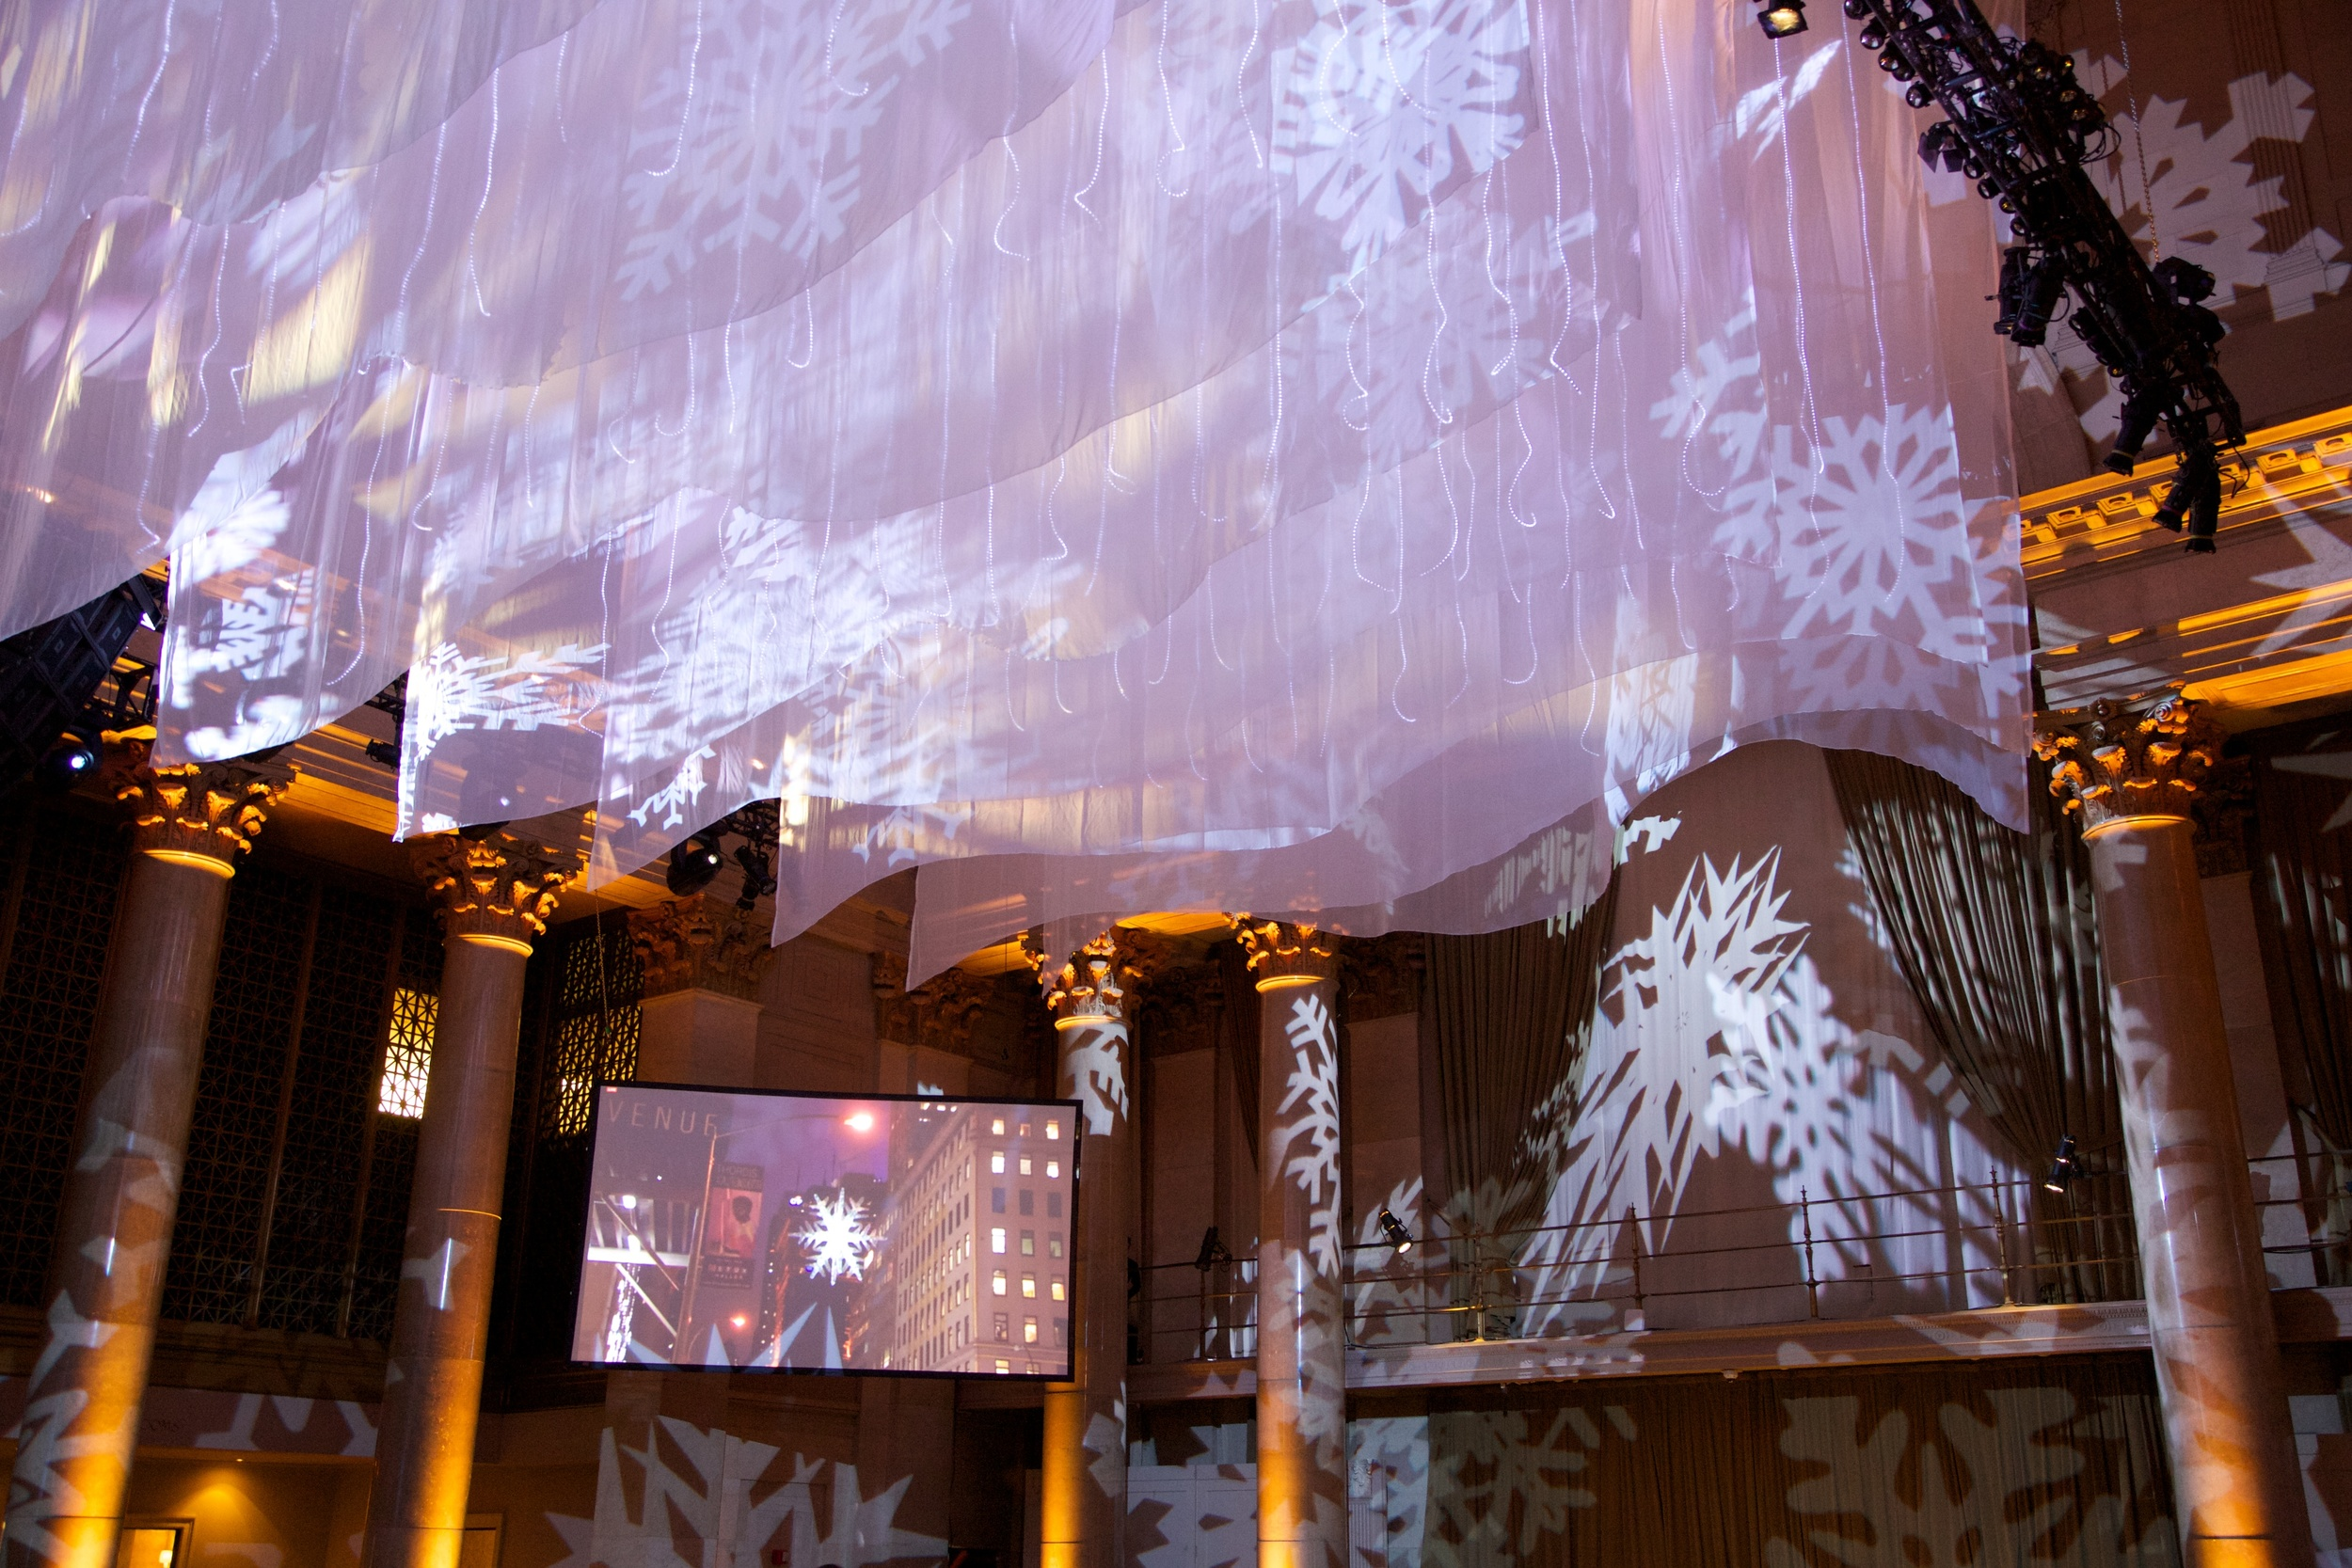 Decor at the 11th Annual UNICEF Snowflake Ball ©2015 Julie Skarratt Photography, Inc./U.S. Fund for UNICEF